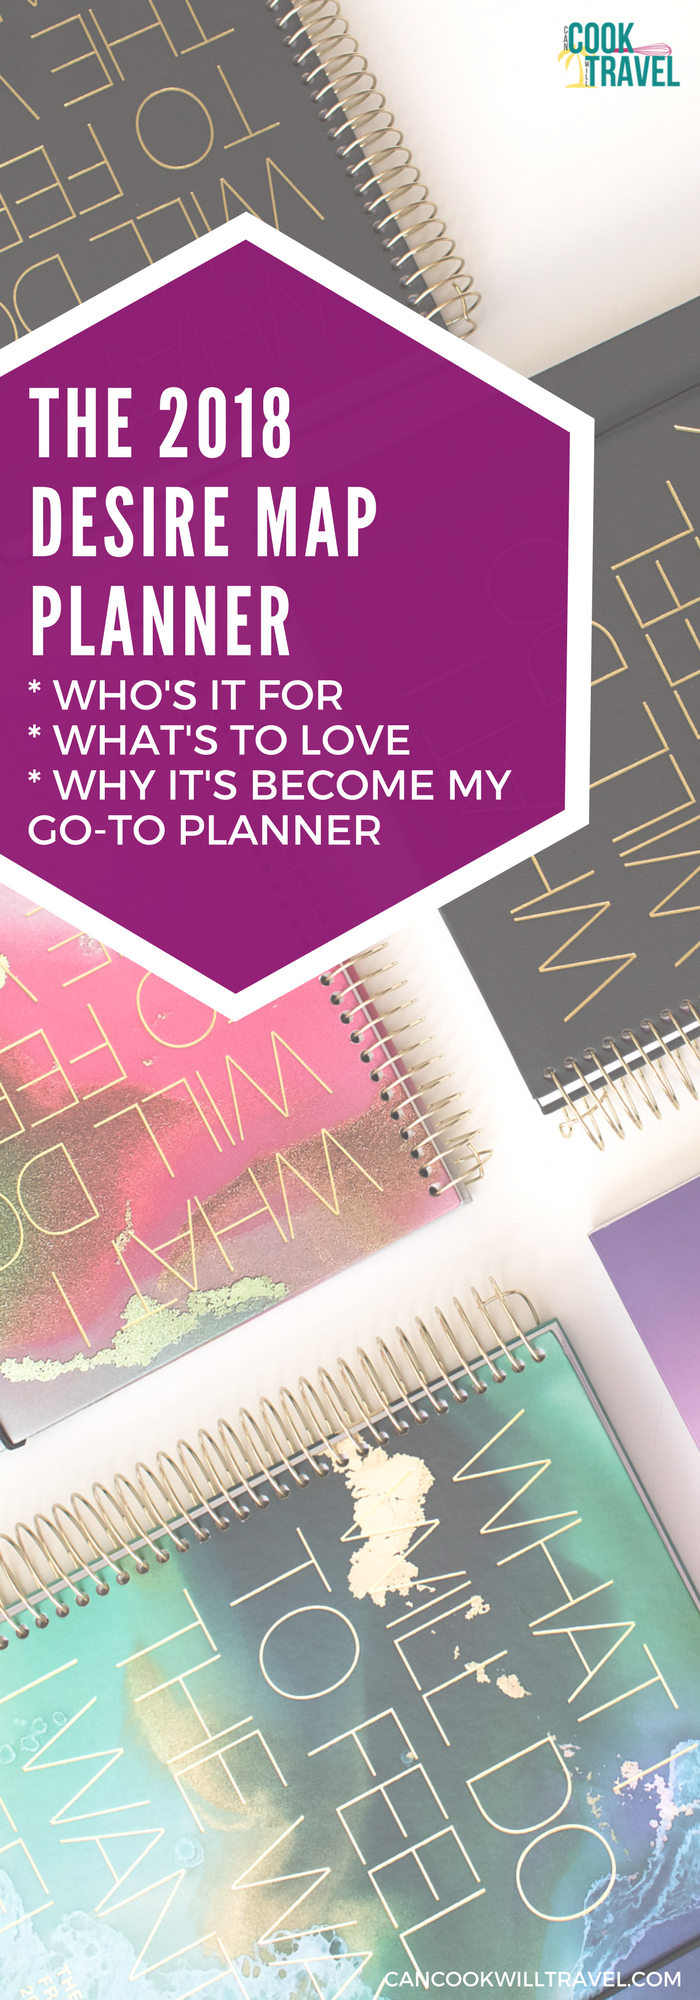 2018 Desire Map Planner Review_Tall